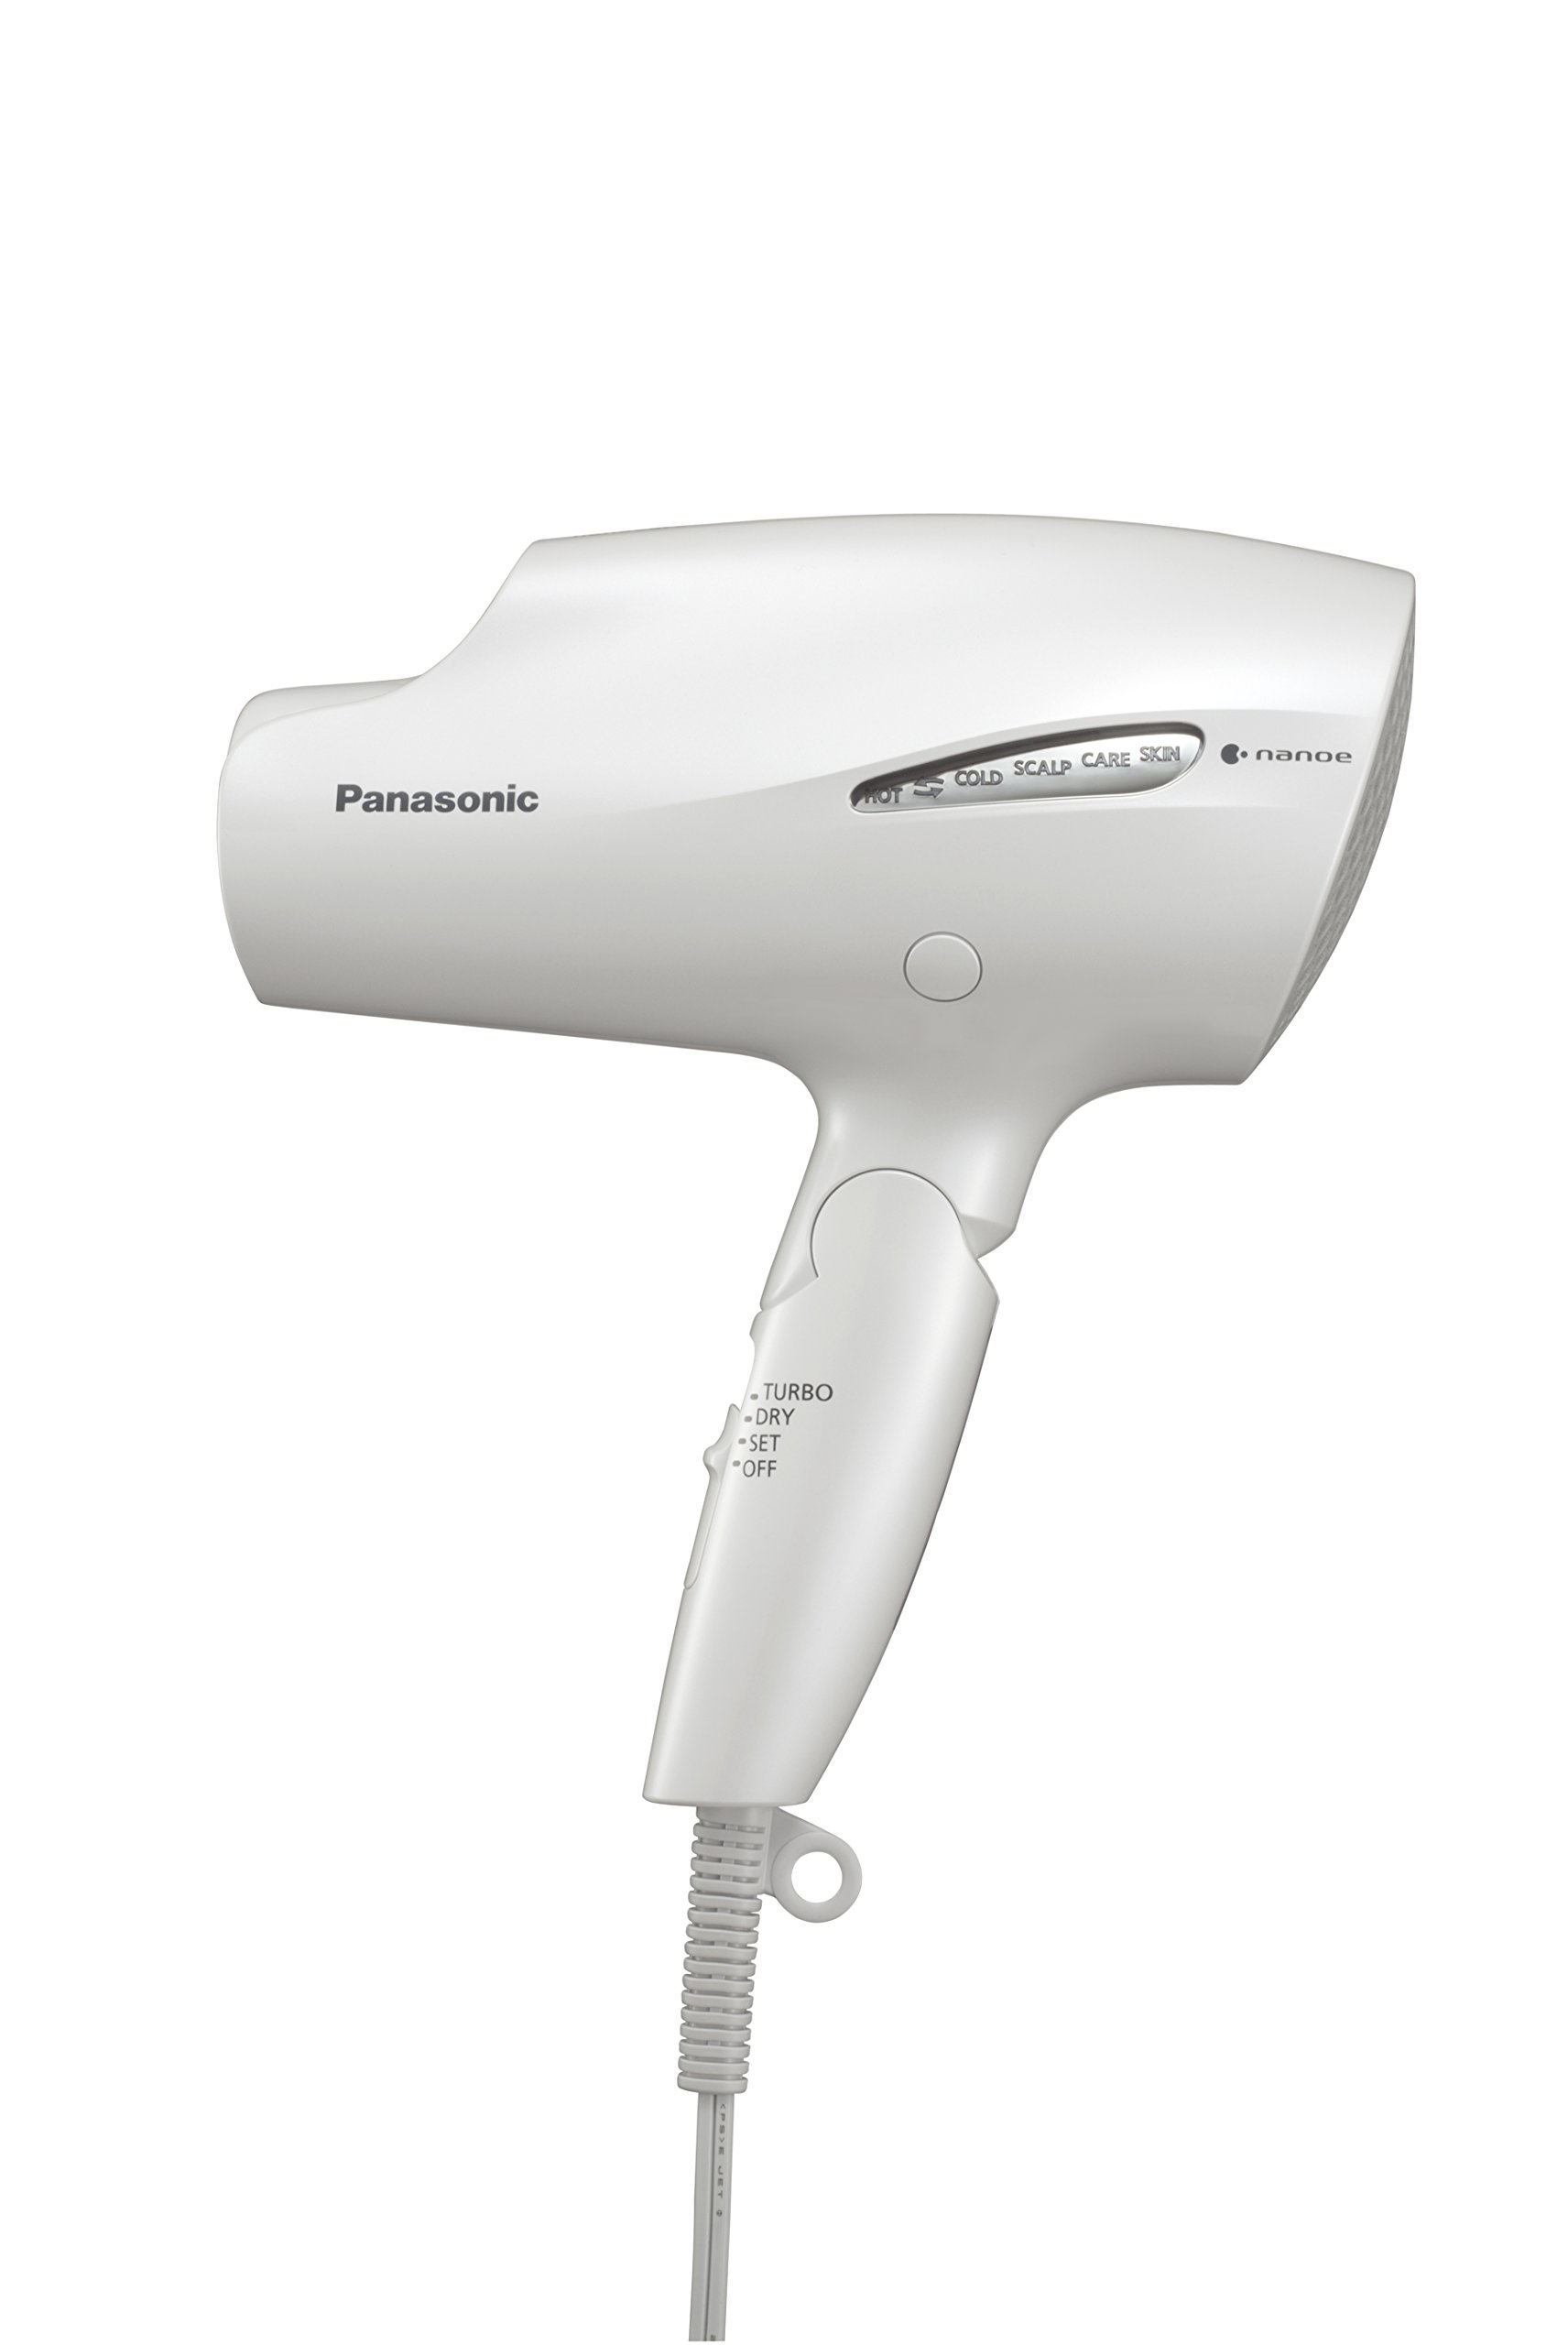 Hair dryer amazon jp